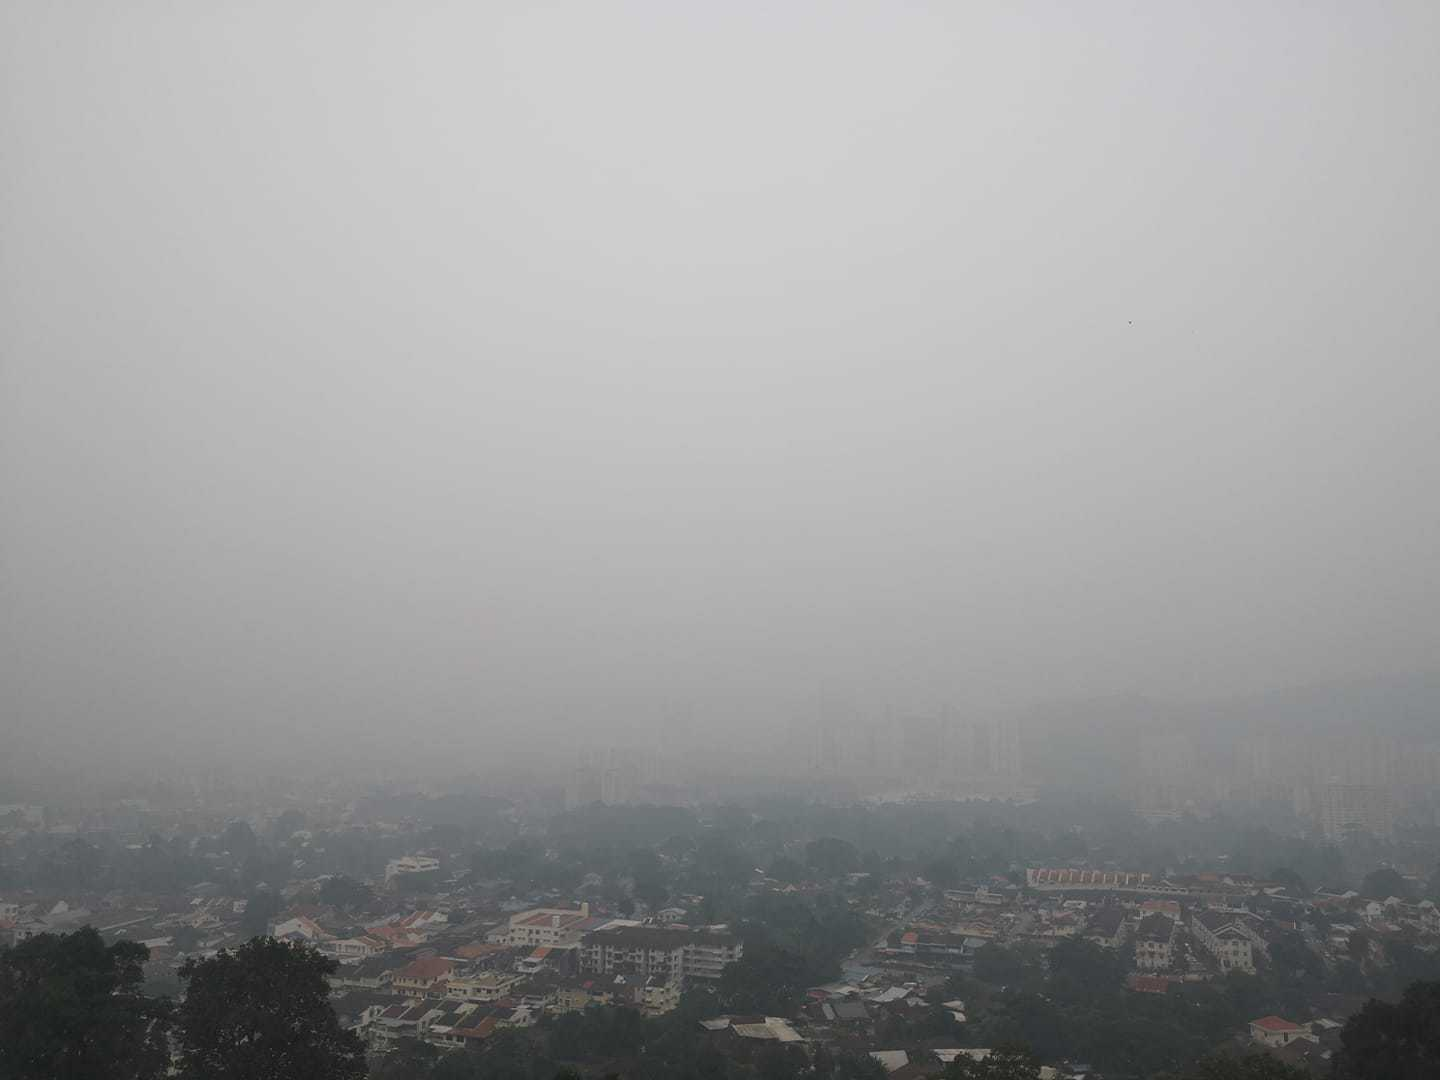 Air pollution in Georgetown, Penang, Malaysia.